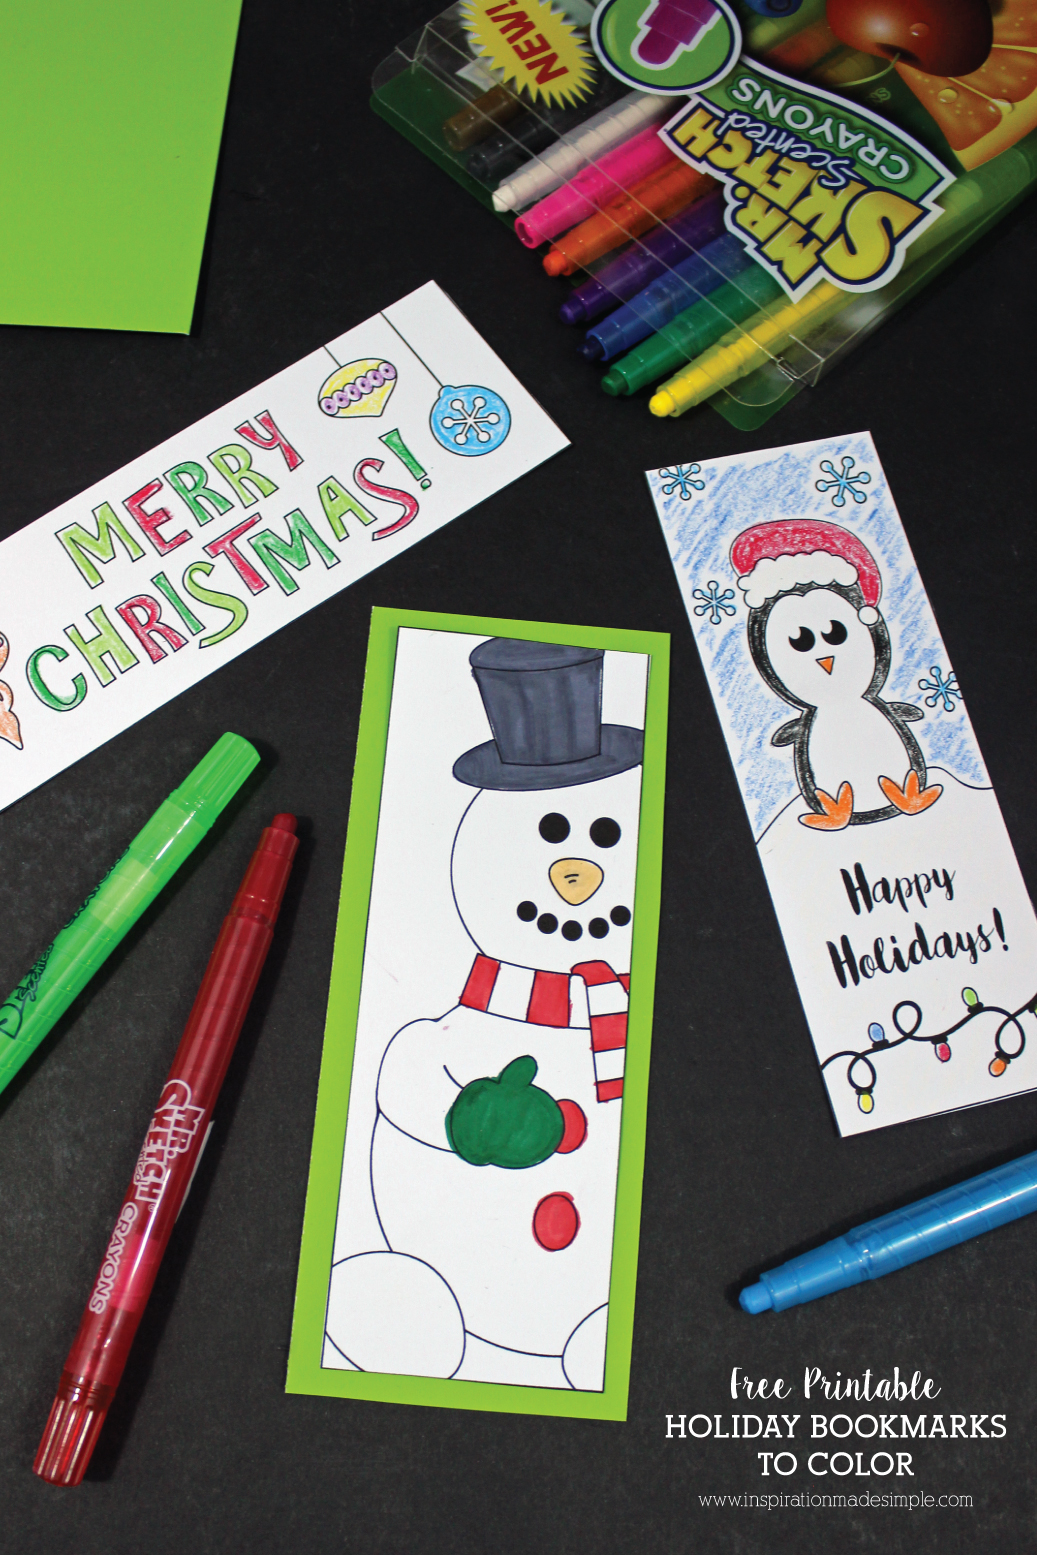 Free Printable Holiday Bookmarks to Color - make great gift tags too!